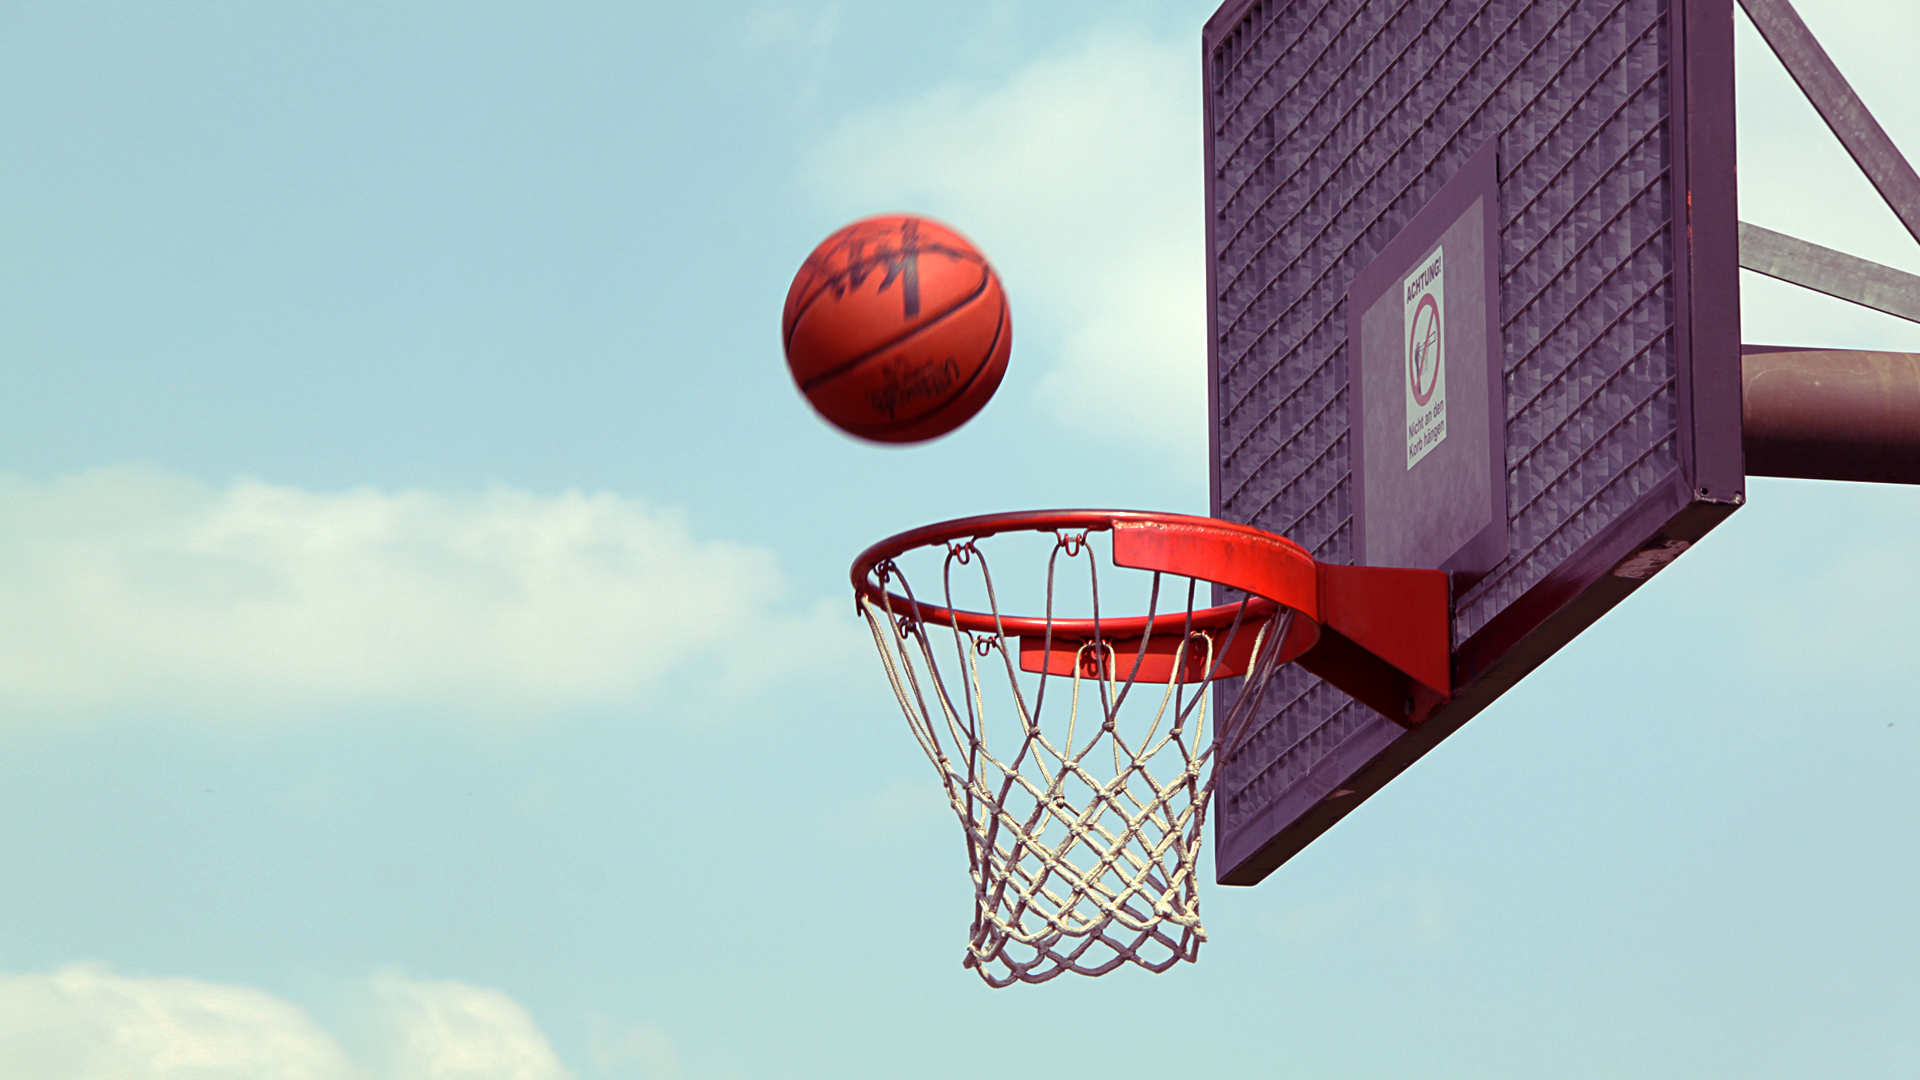 Picture Of Nike Basketball Quotes Hd Wallpapers Basketball Wallpapers Hd Pixelstalk Net